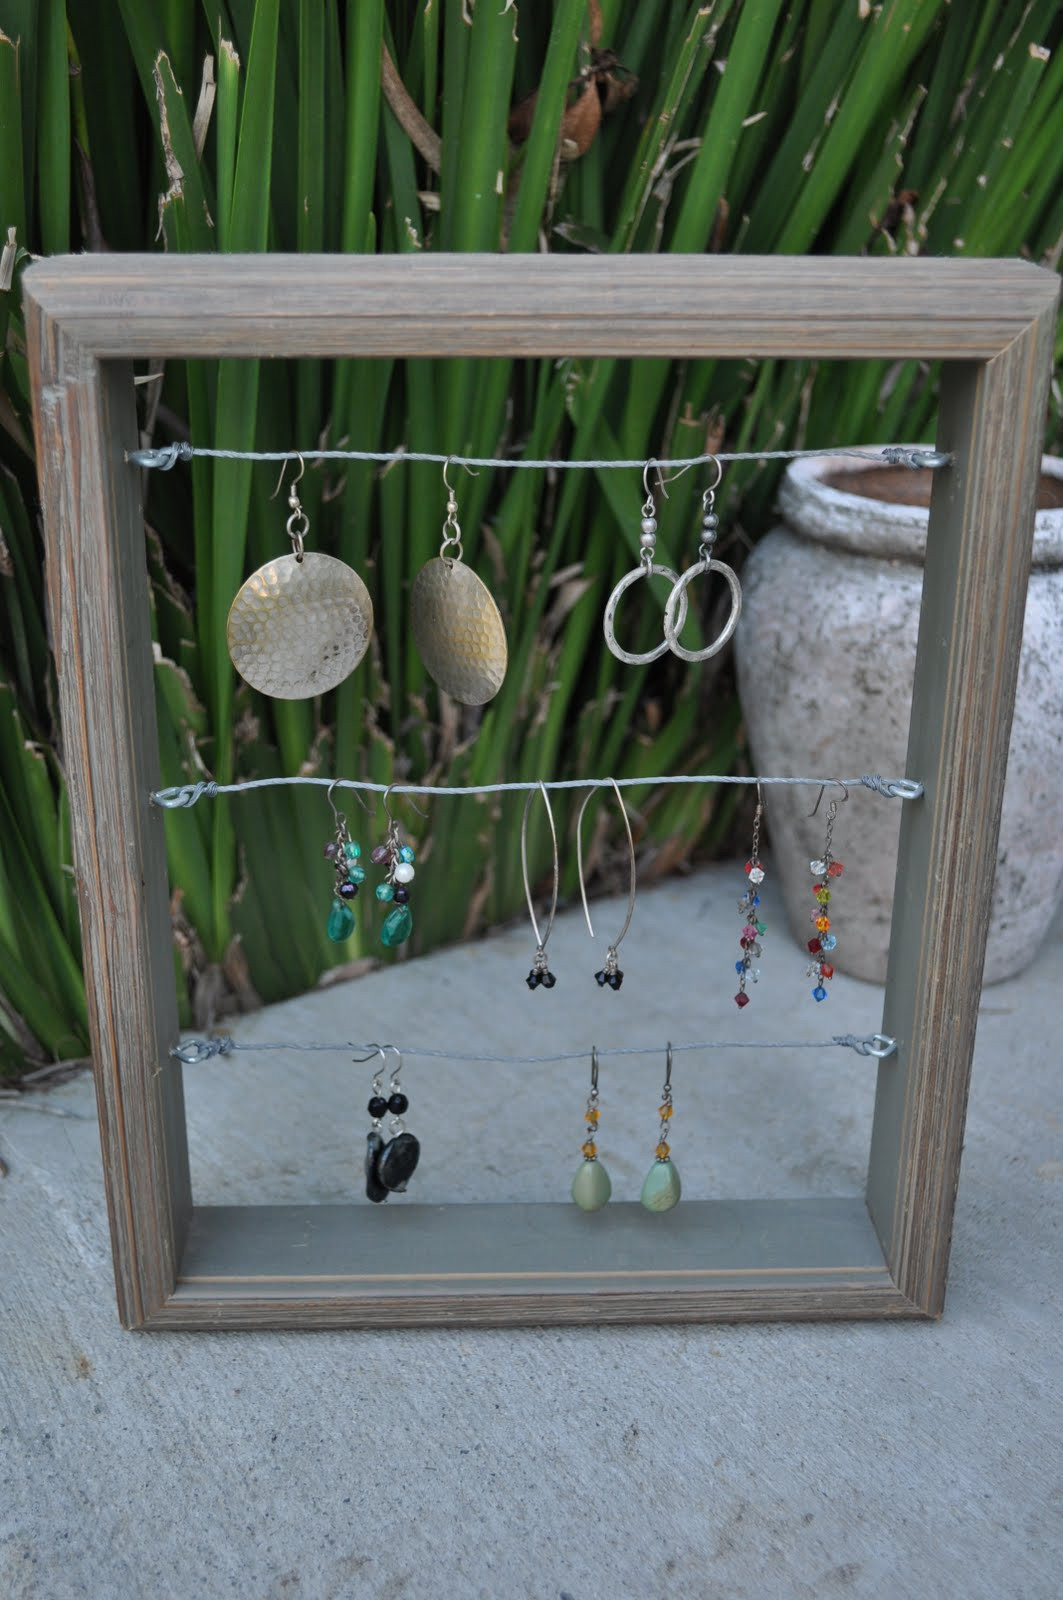 Best ideas about DIY Earring Display . Save or Pin Four Harp Designs Tutorial DIY Earring Display & Organizer Now.